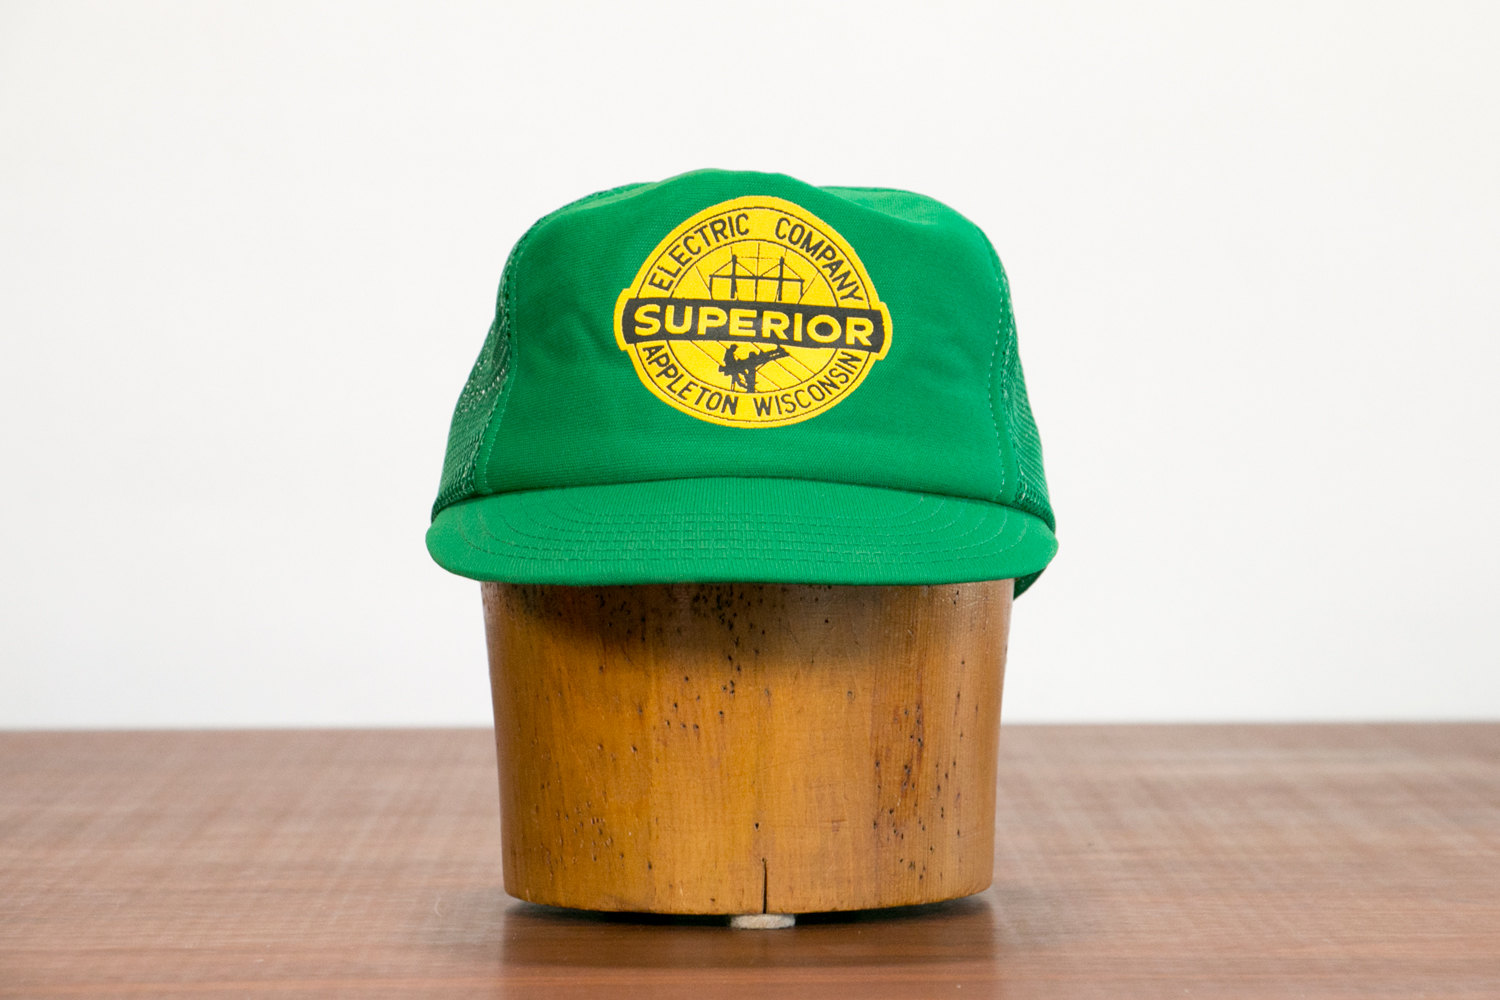 Vintage 1950's Superior Electric Company Factory Hat / Trucker Cap // Green & Yellow, Appleton, Wisconsin // Retro, Hipster, Rocker, Indie